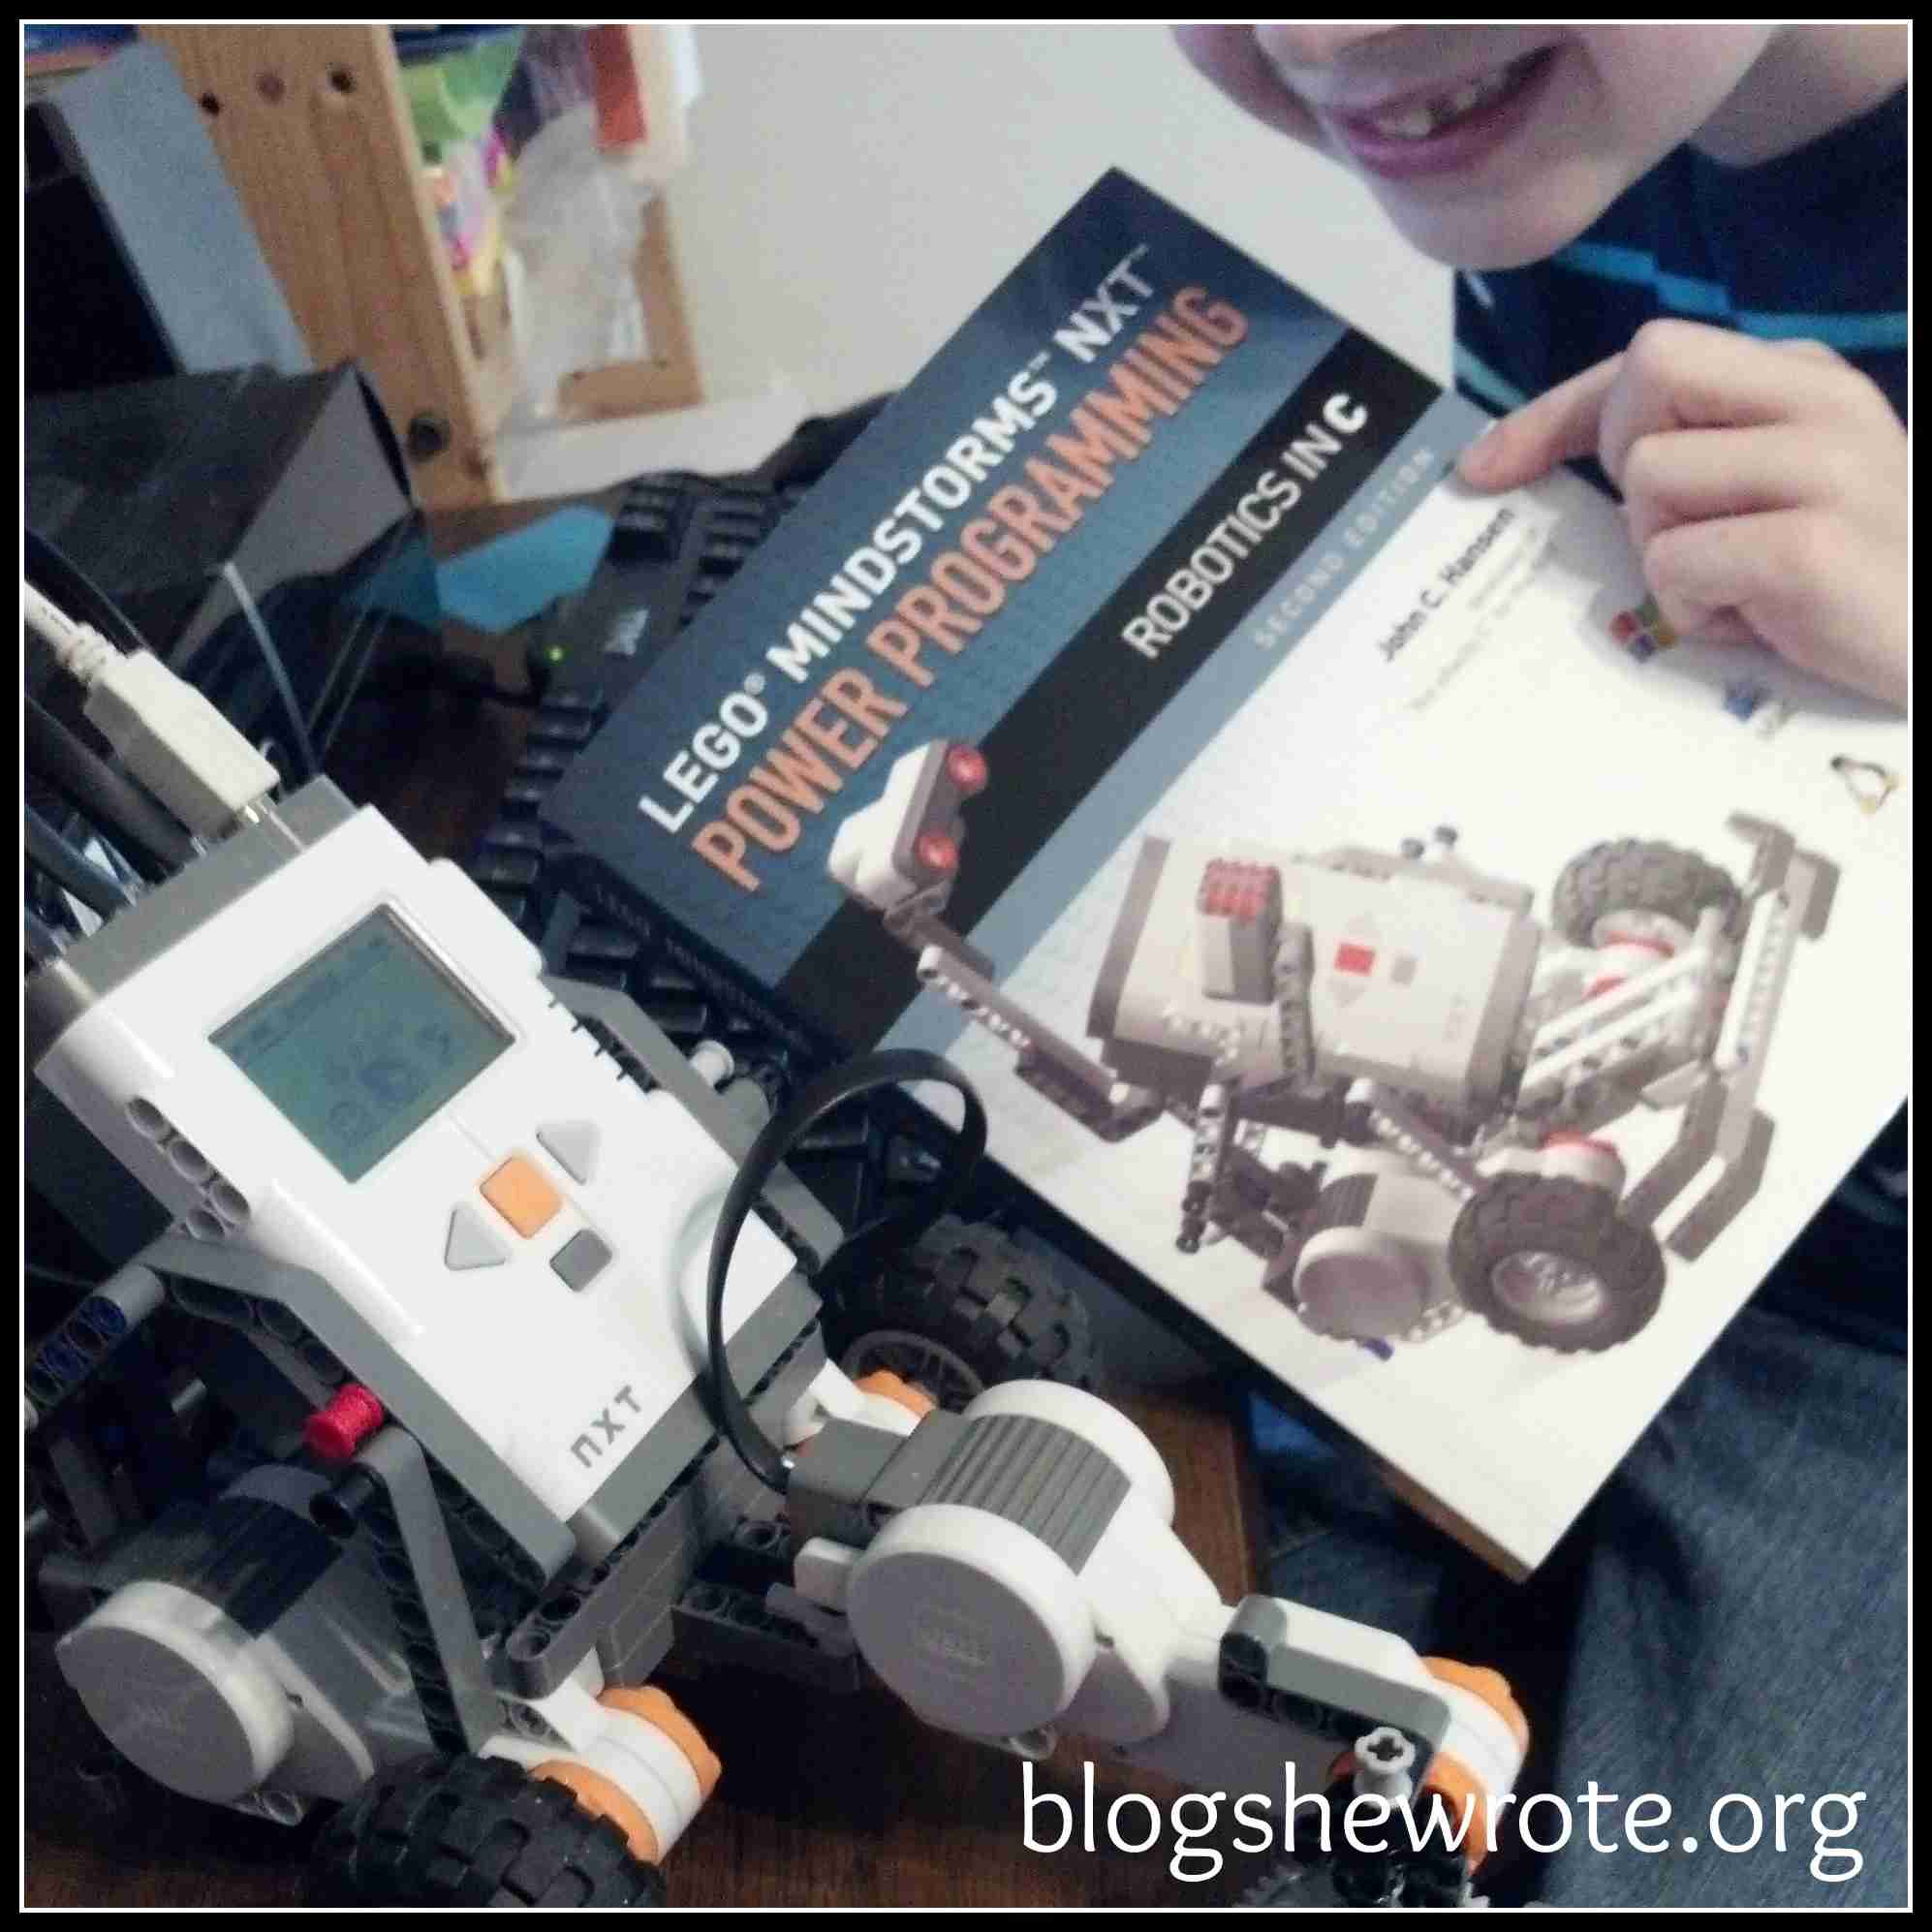 Blog, She Wrote: 10 Best Tinkering Gifts for Your Inventor